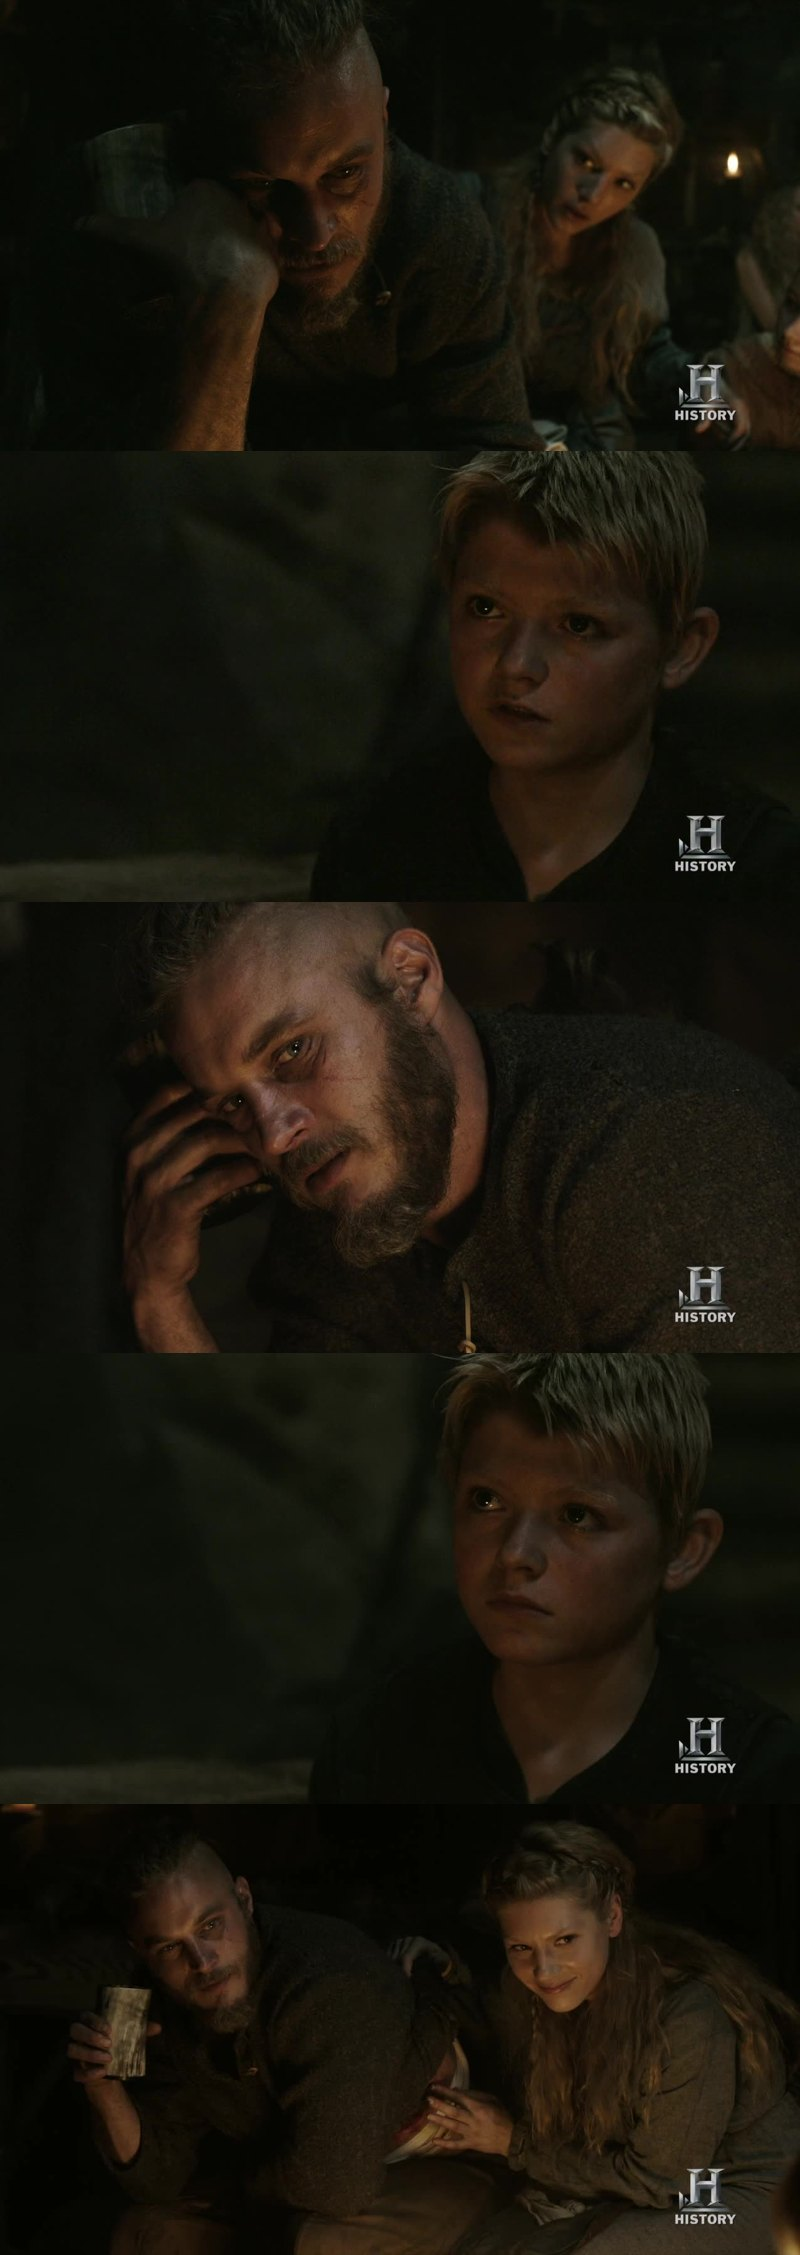 the first thing i love about ragnar and lagertha is the loyalty. they care so much about their family.